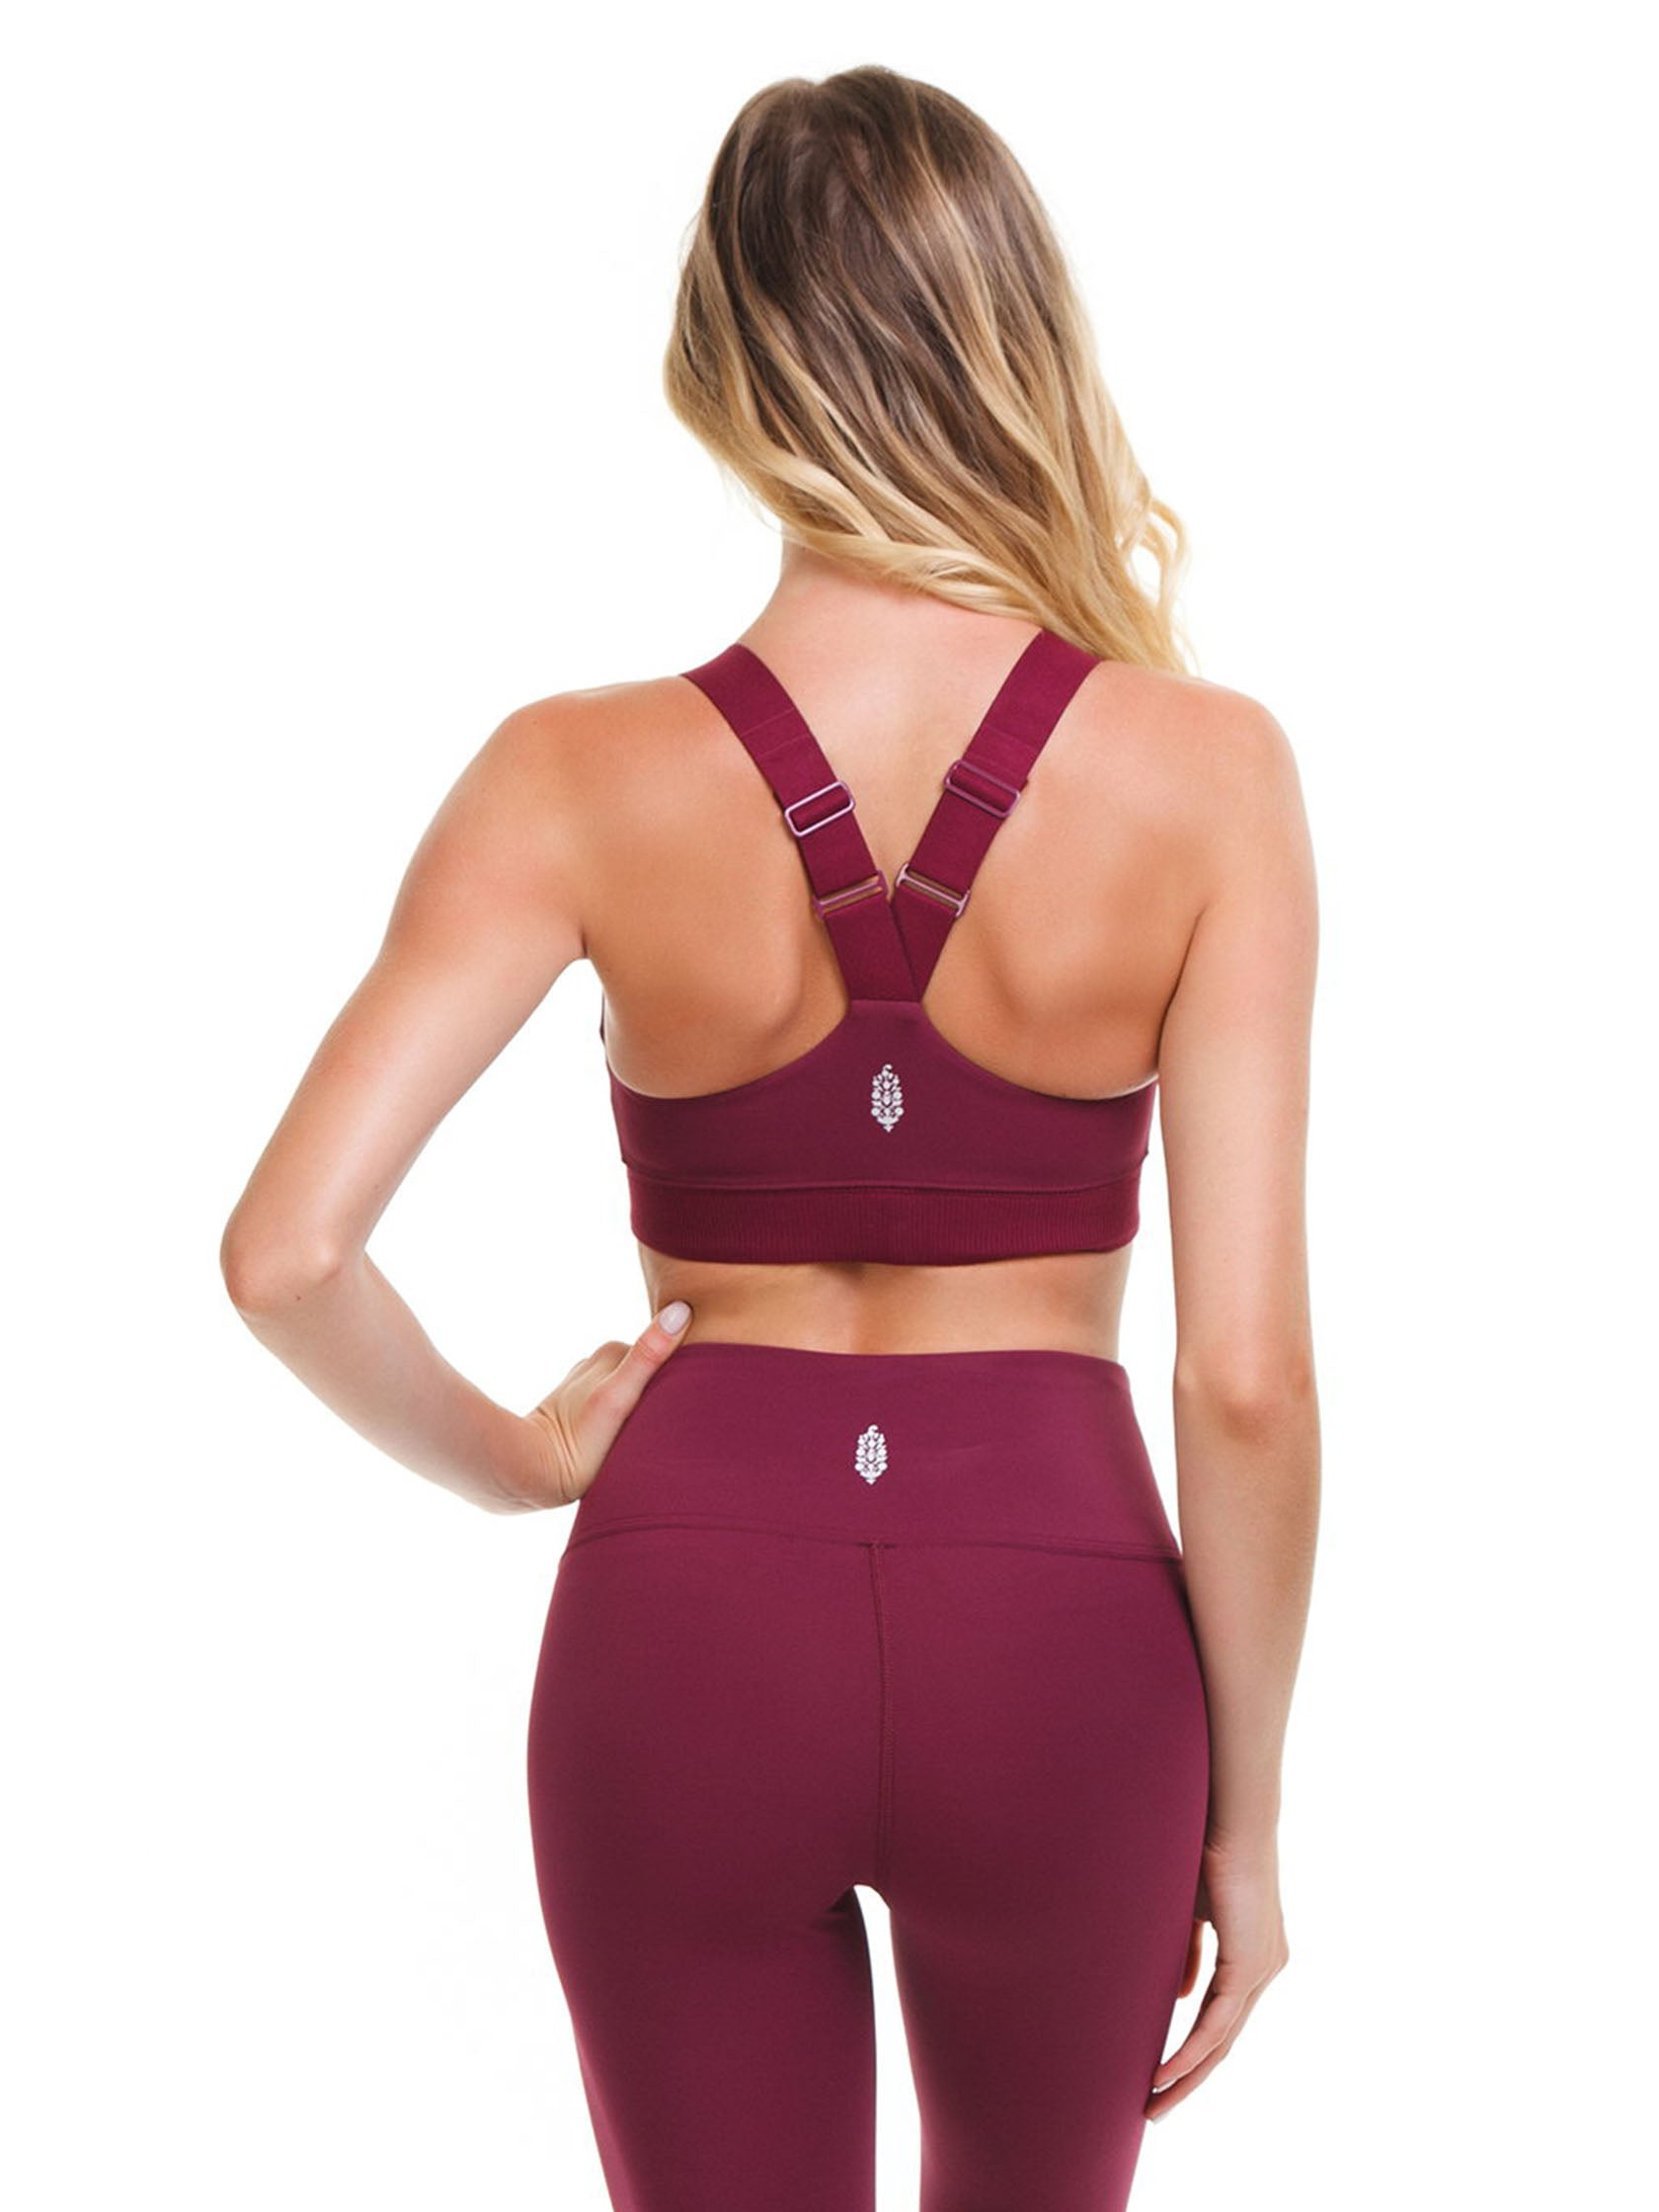 Women outfit in a sports bra rental from Free People called Freestyle Sports Bra